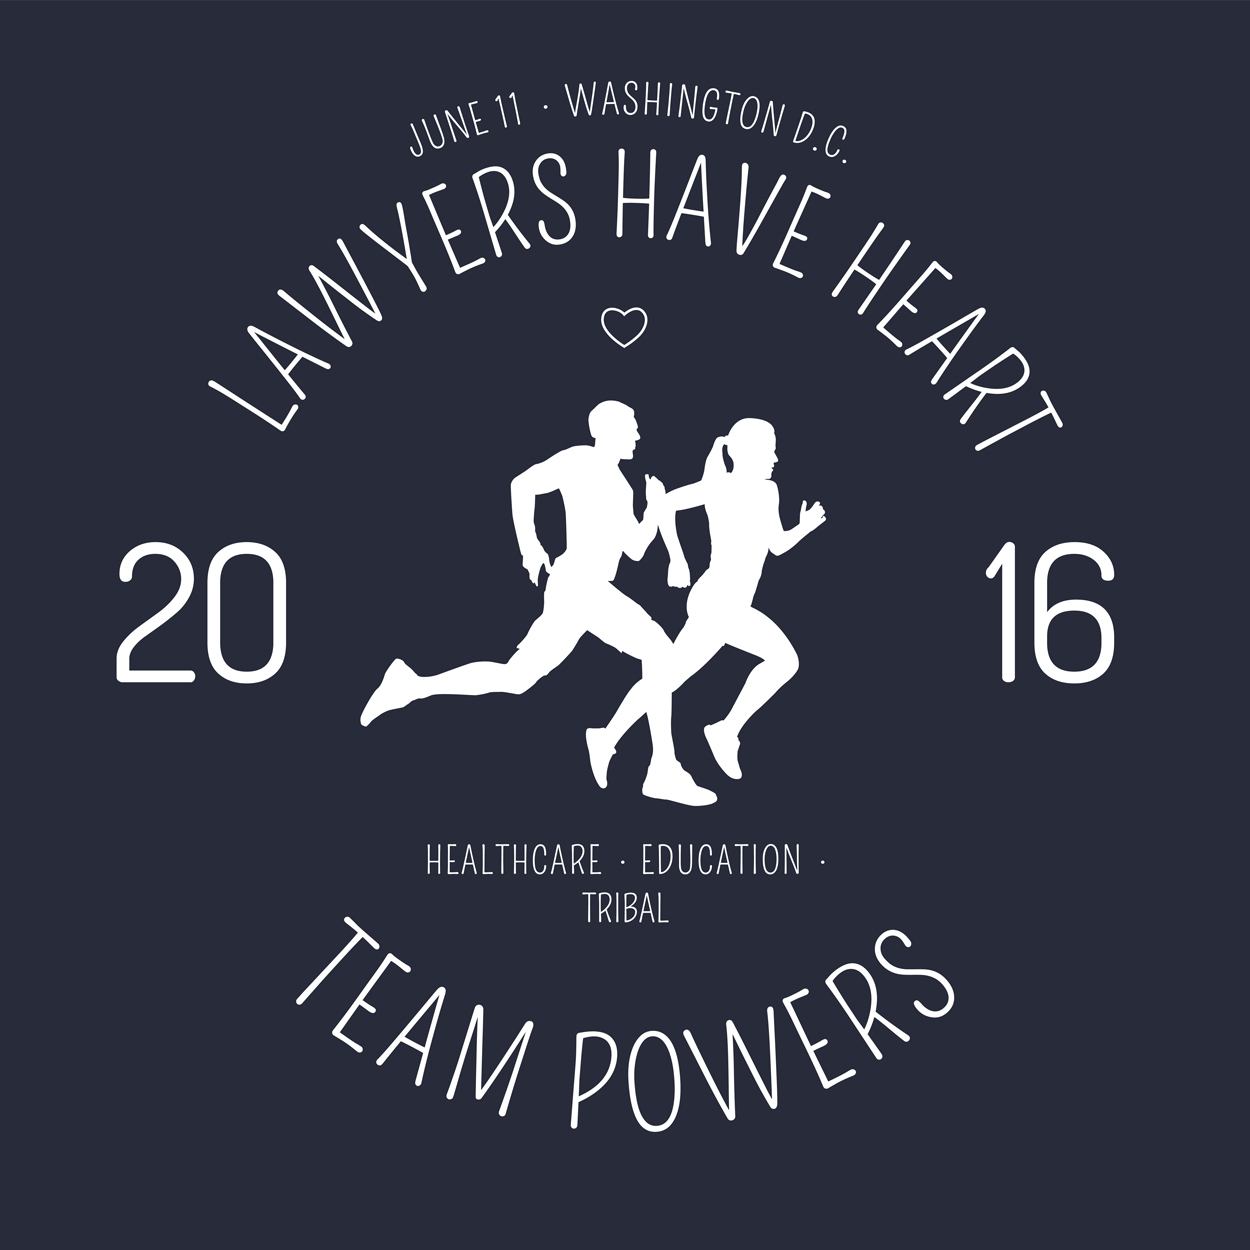 Lawyers Have Heart t-shirt logo for PPSV law firm